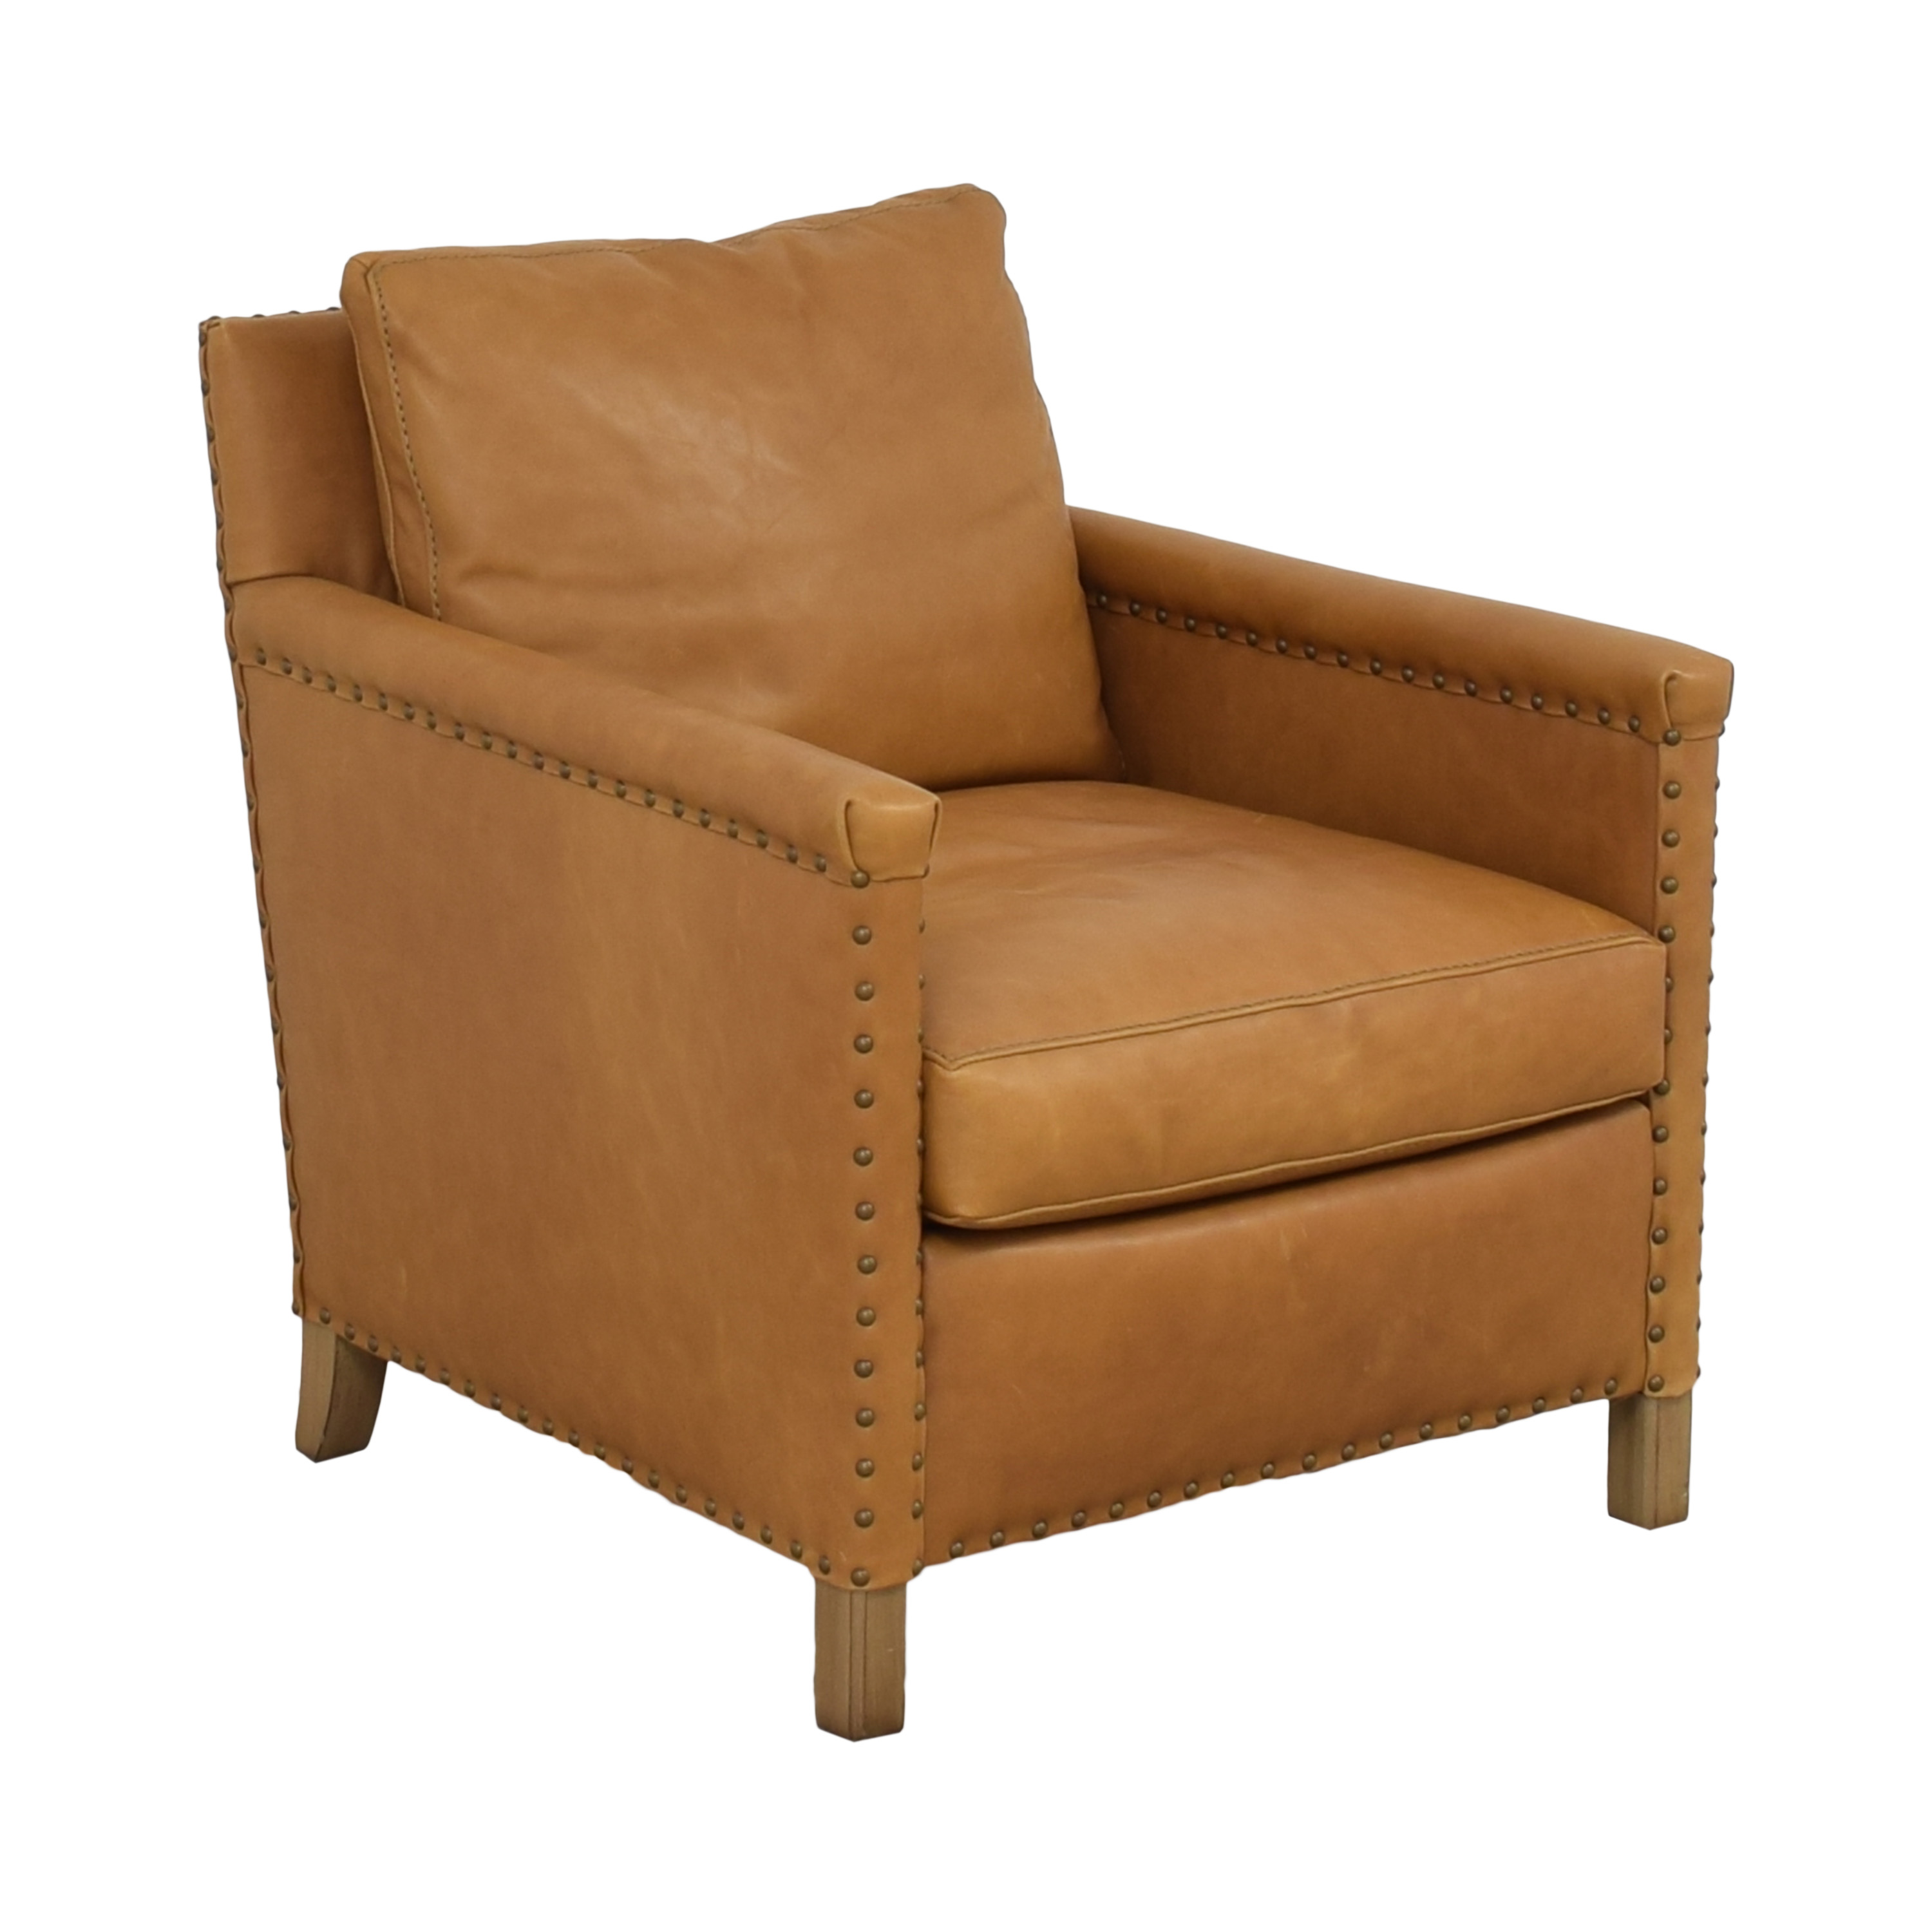 shop Crate & Barrel Trevor Leather Chair Crate & Barrel